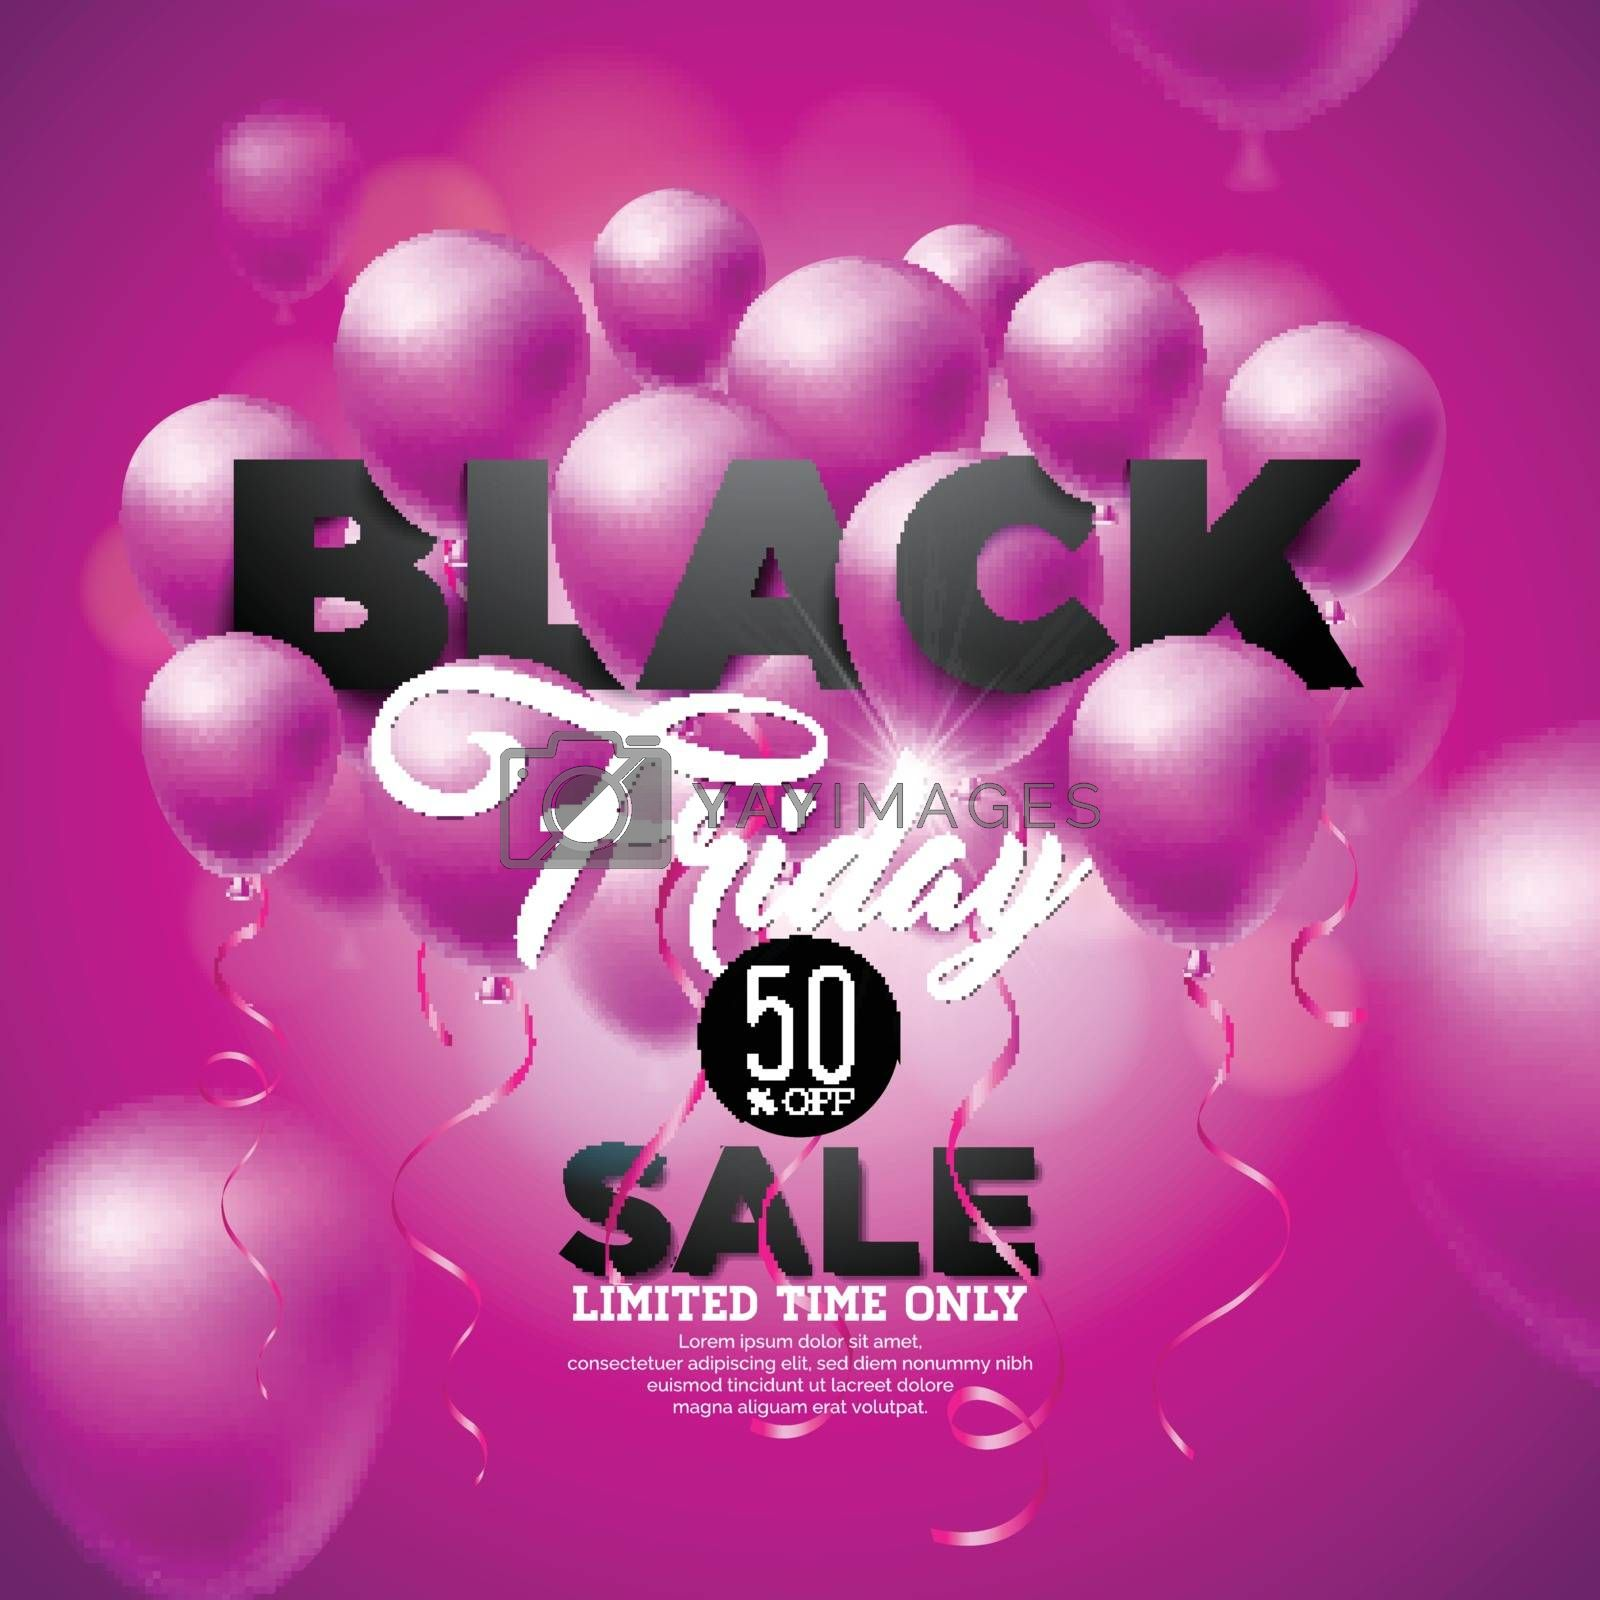 Black Friday Sale Vector Illustration with Shiny Balloons on Violet Background